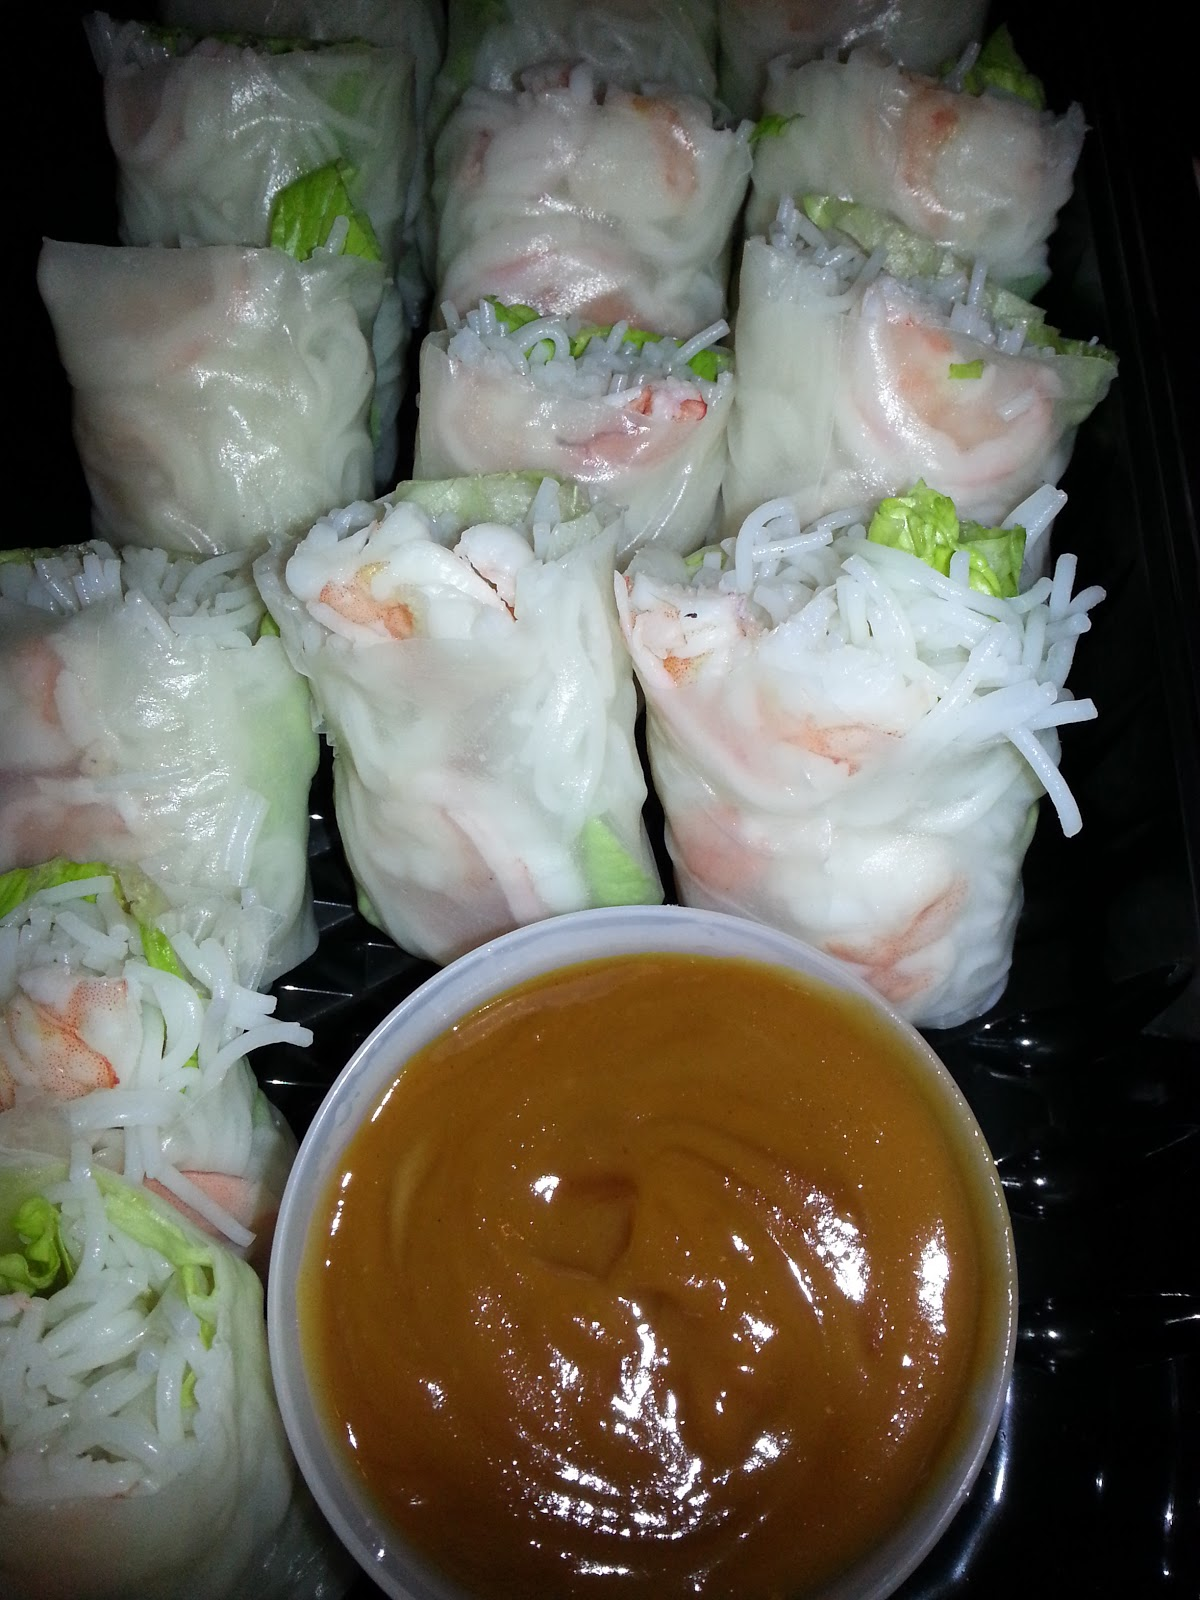 Home Kine Grindz: Summer Rolls with Peanut Dipping Sauce